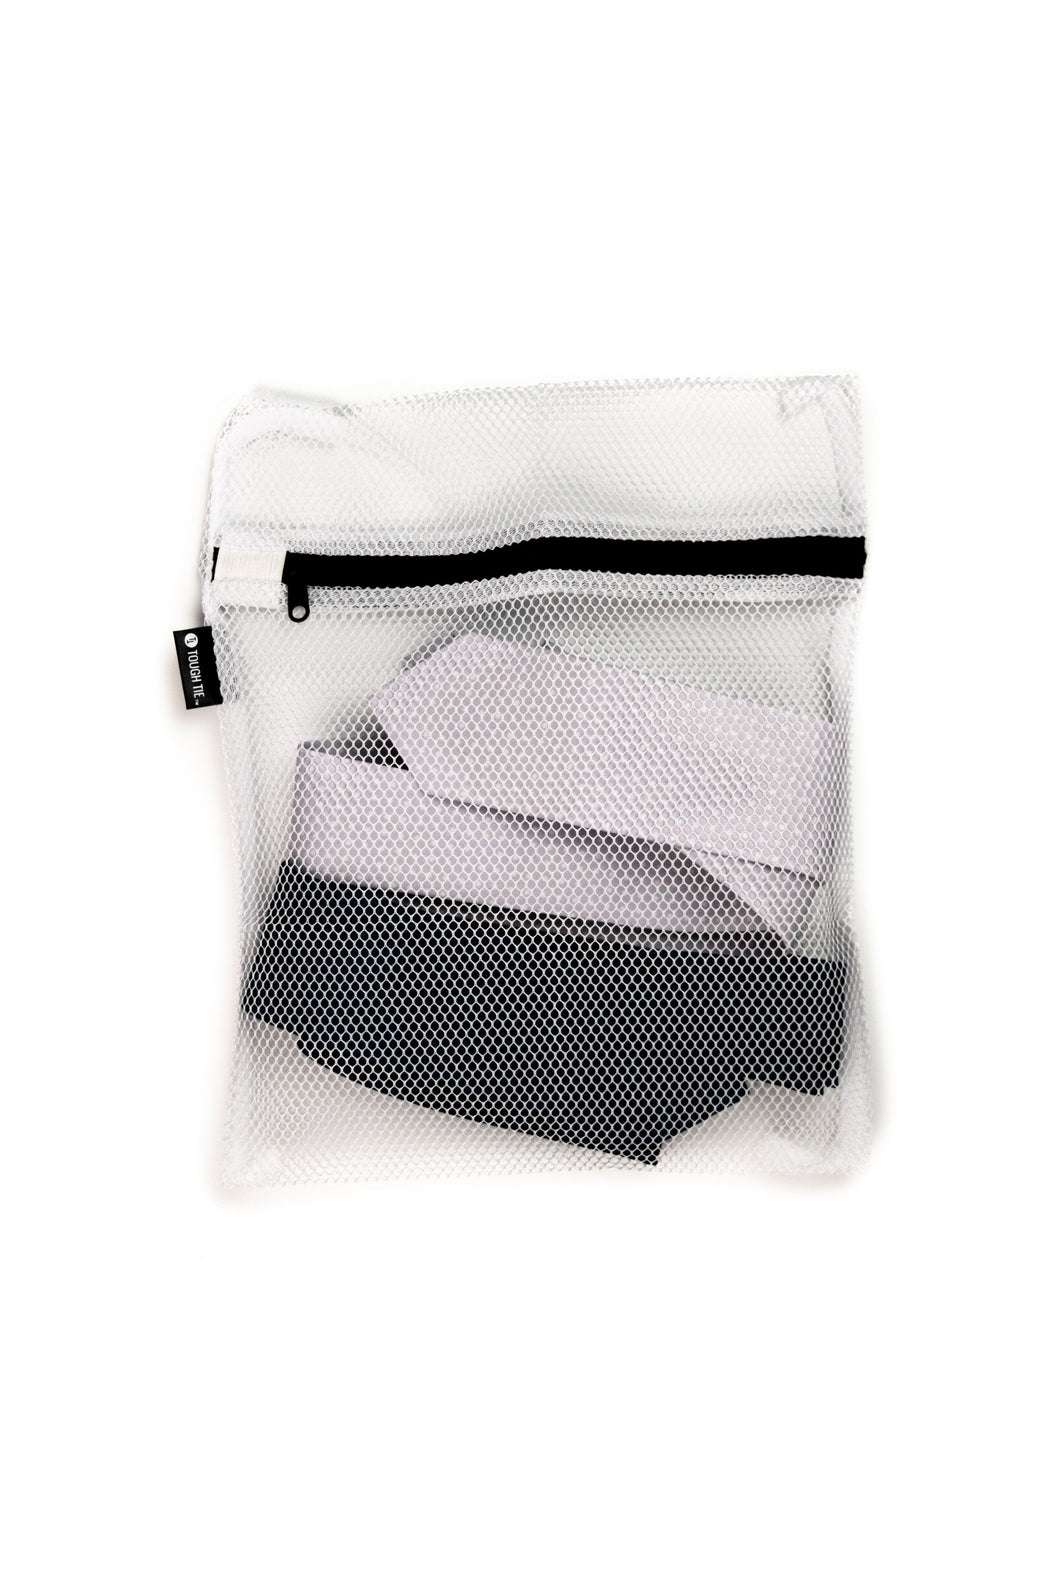 Tough Apparel Wash Bag - Tough Tie